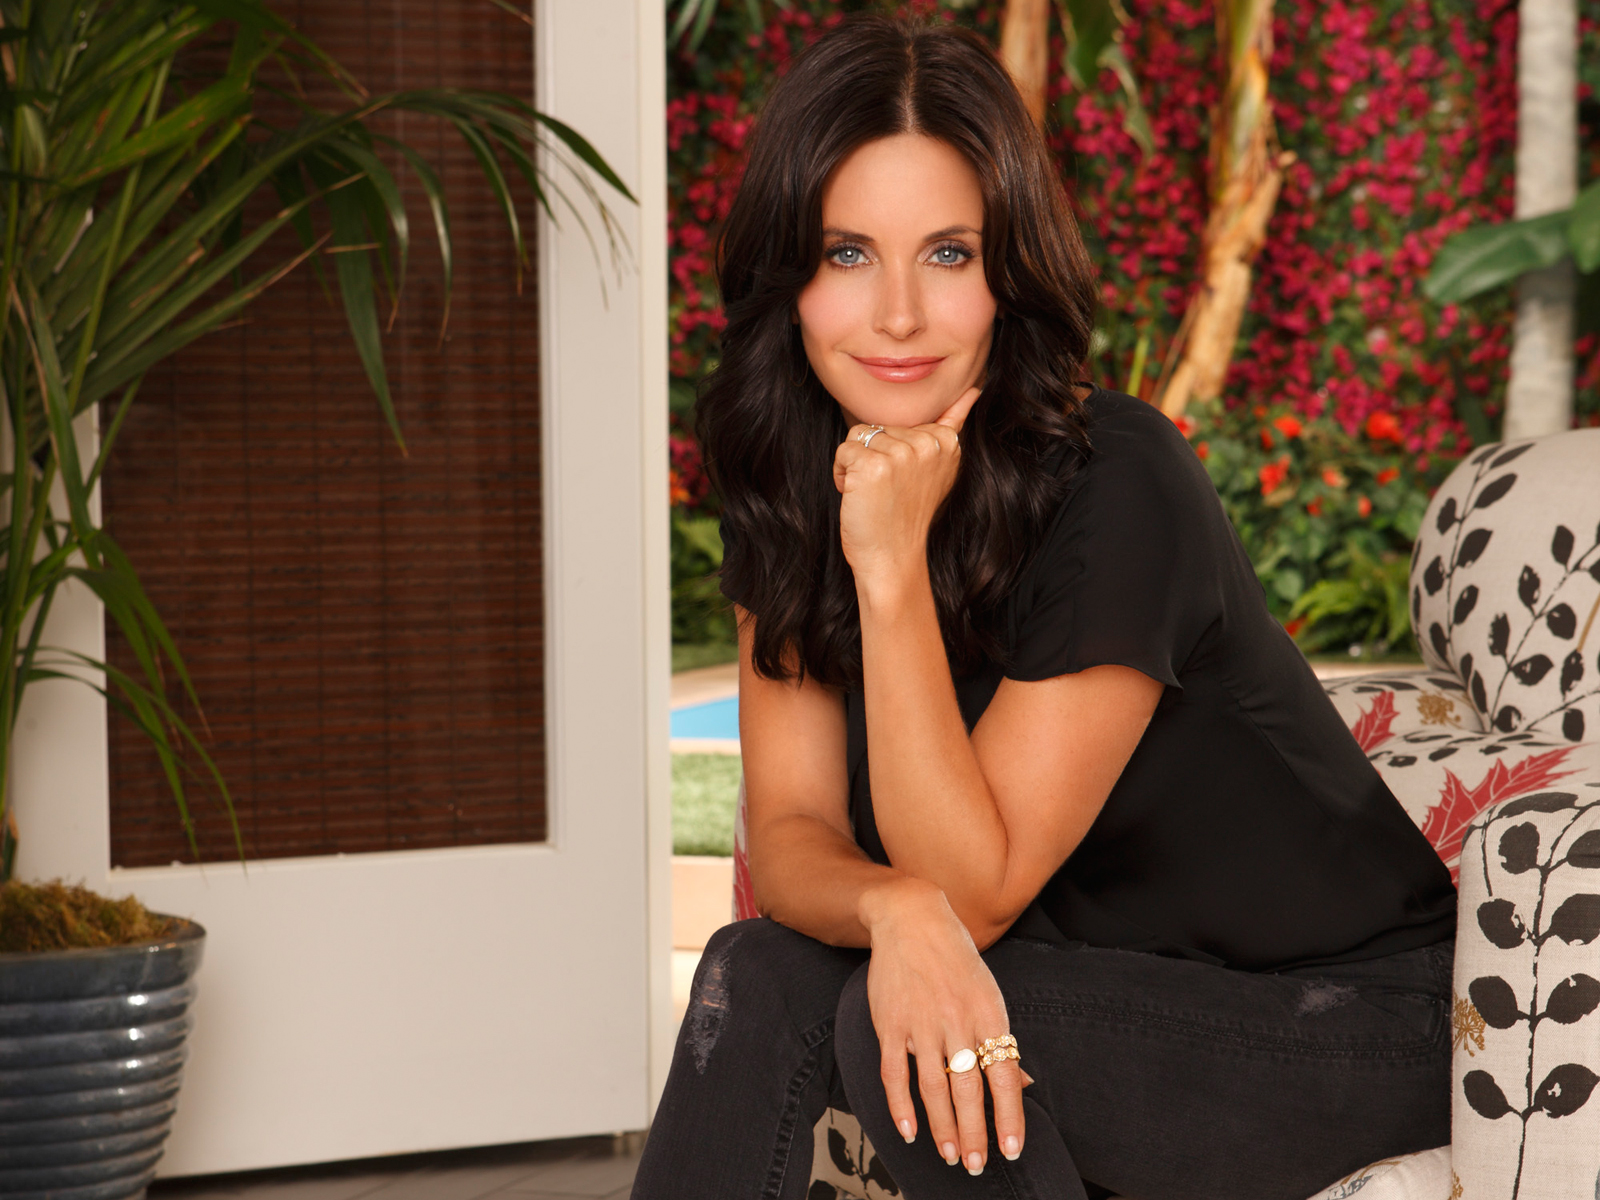 Courteney Cox images Courteney Cox HD wallpaper and backgrou